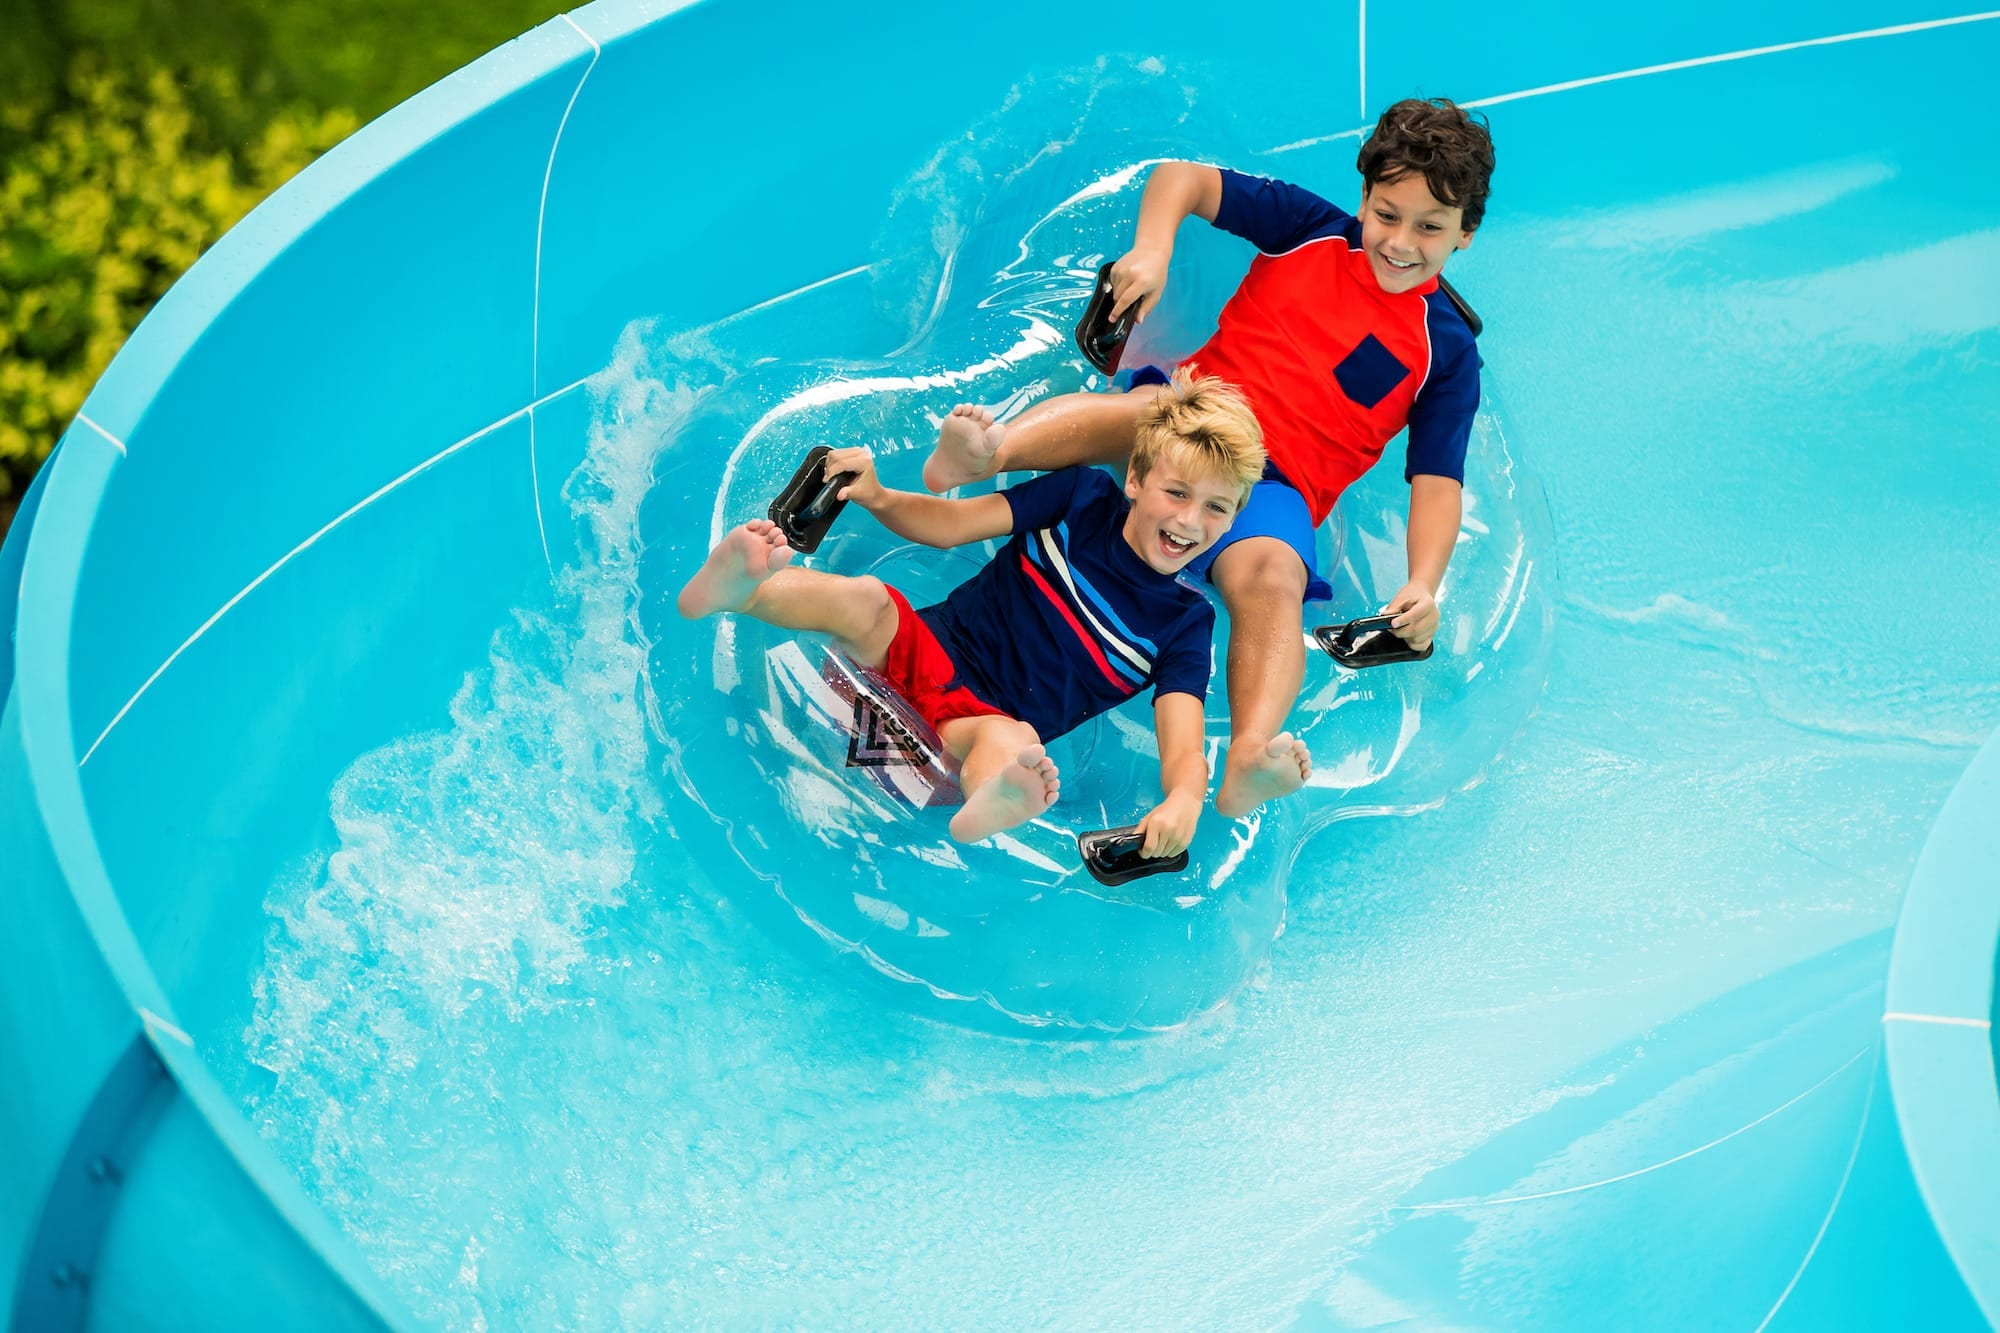 Legoland Water Park to open for 2018 season on March 10